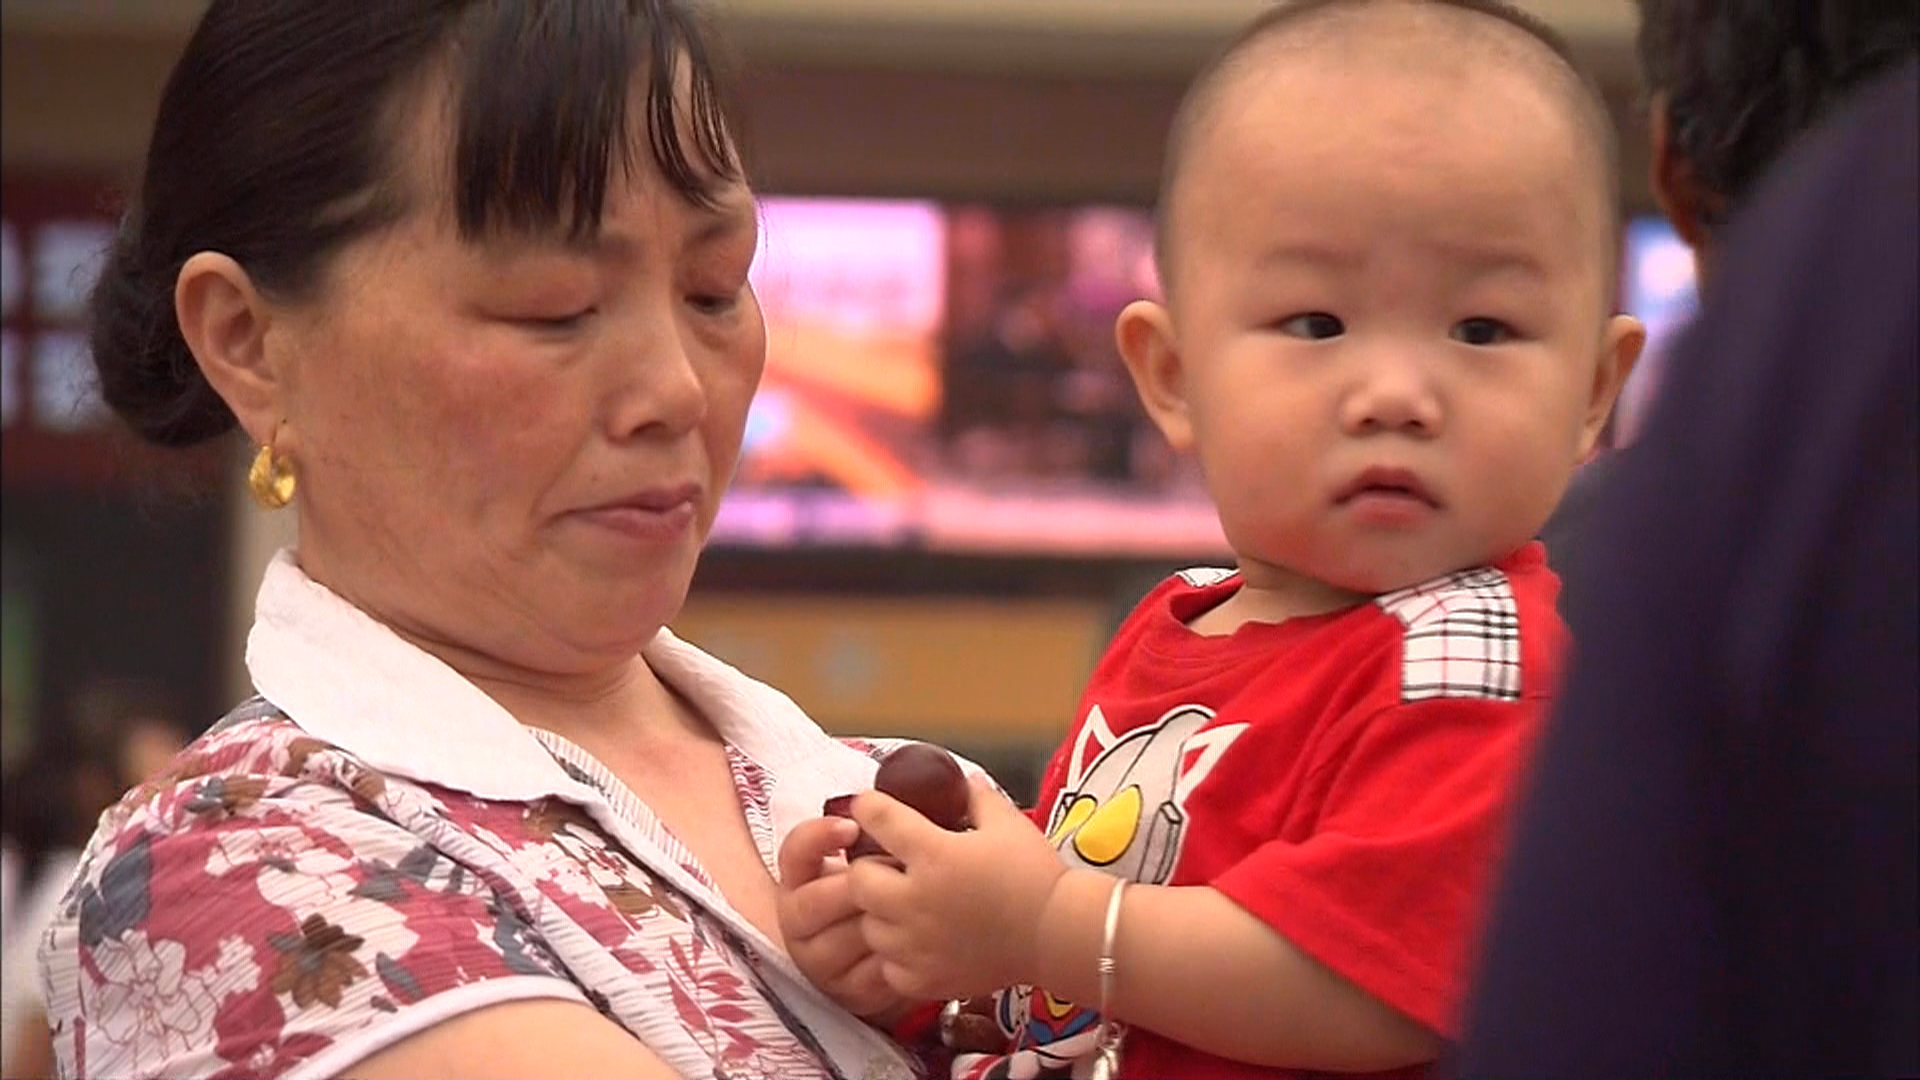 The Real Reasons Behind China's New Child Policy